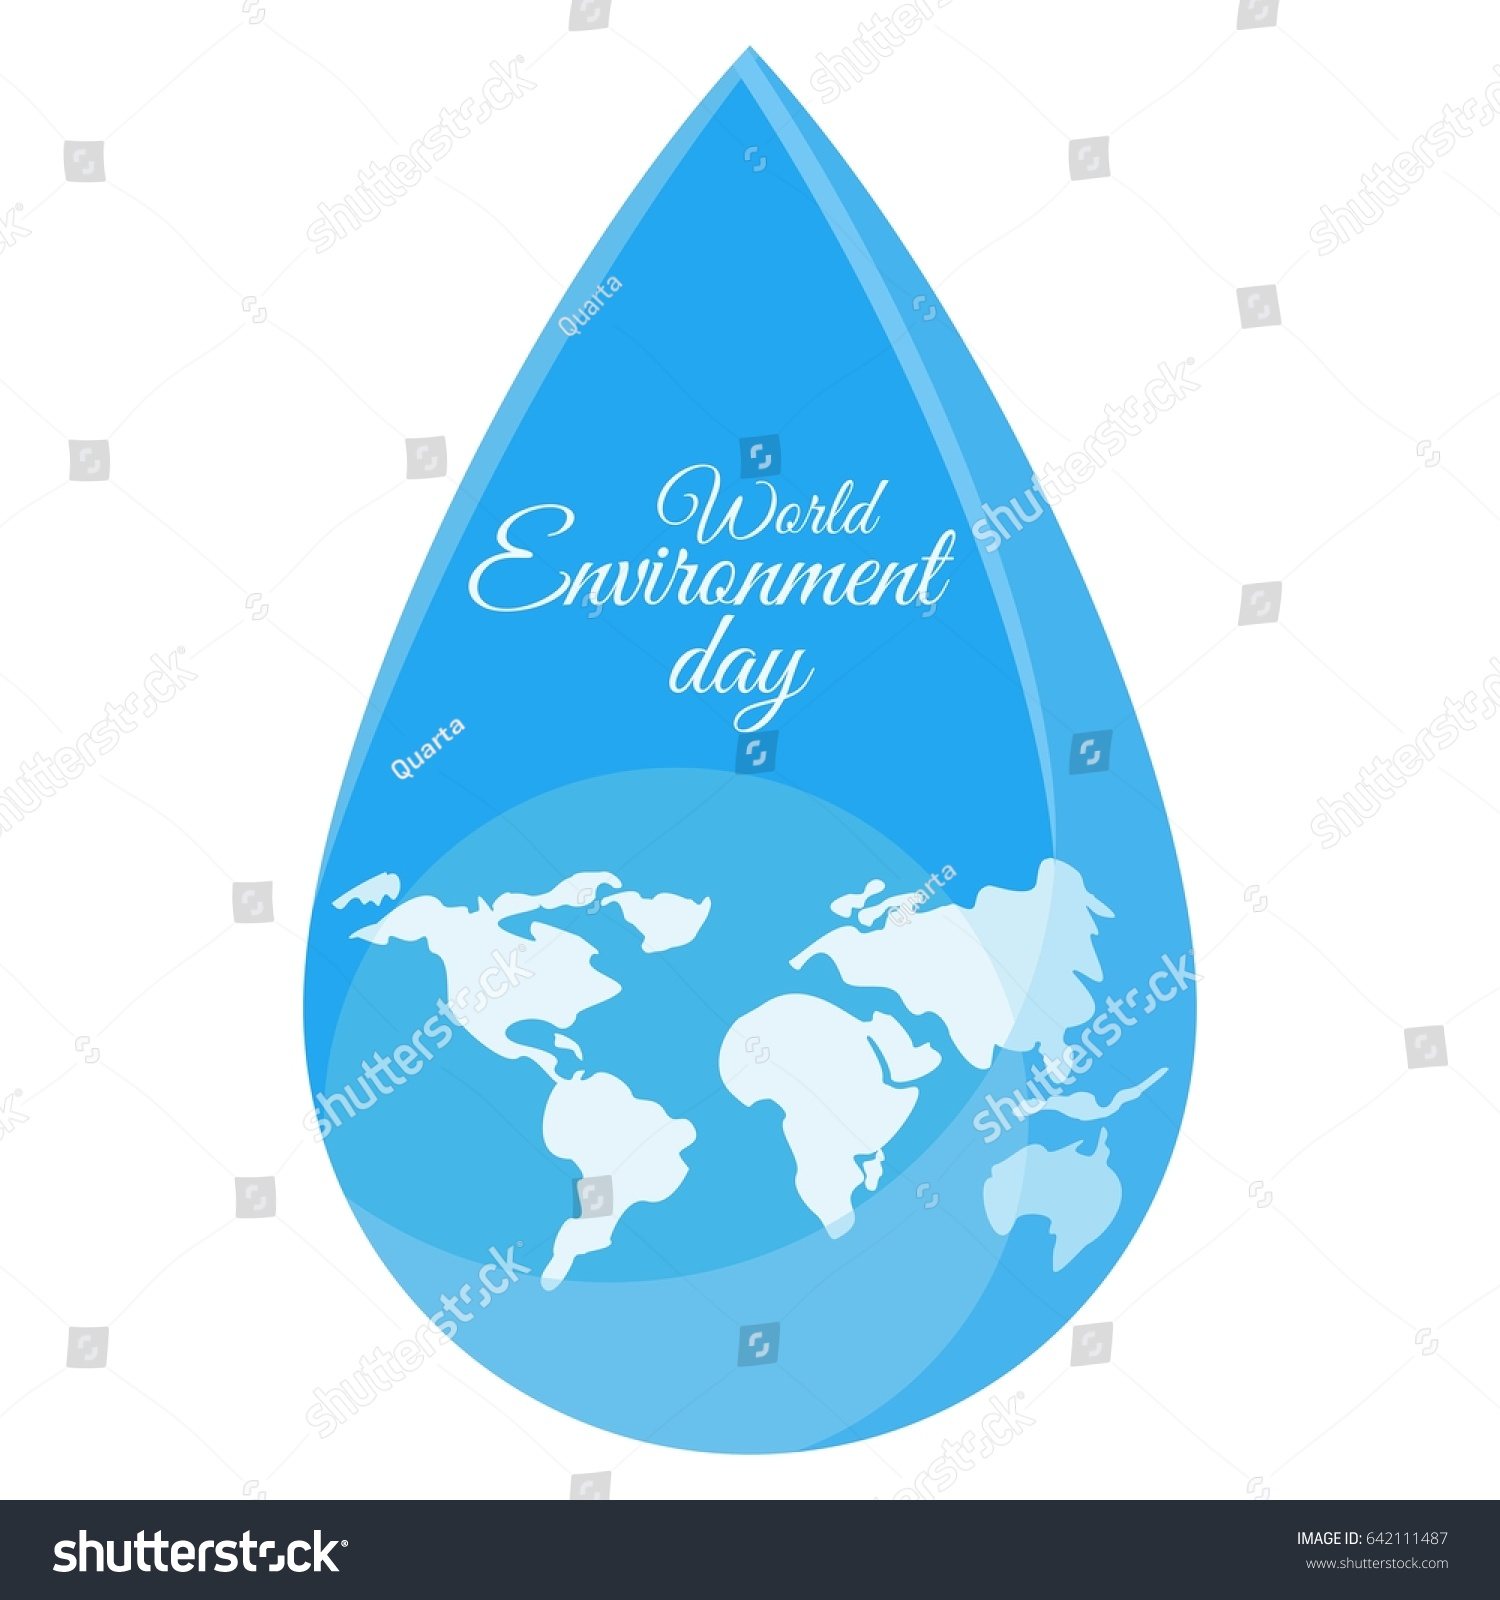 Planet drop world map water drop stock vector 642111487 shutterstock world map in water drop flat vector cartoon illustration objects gumiabroncs Gallery